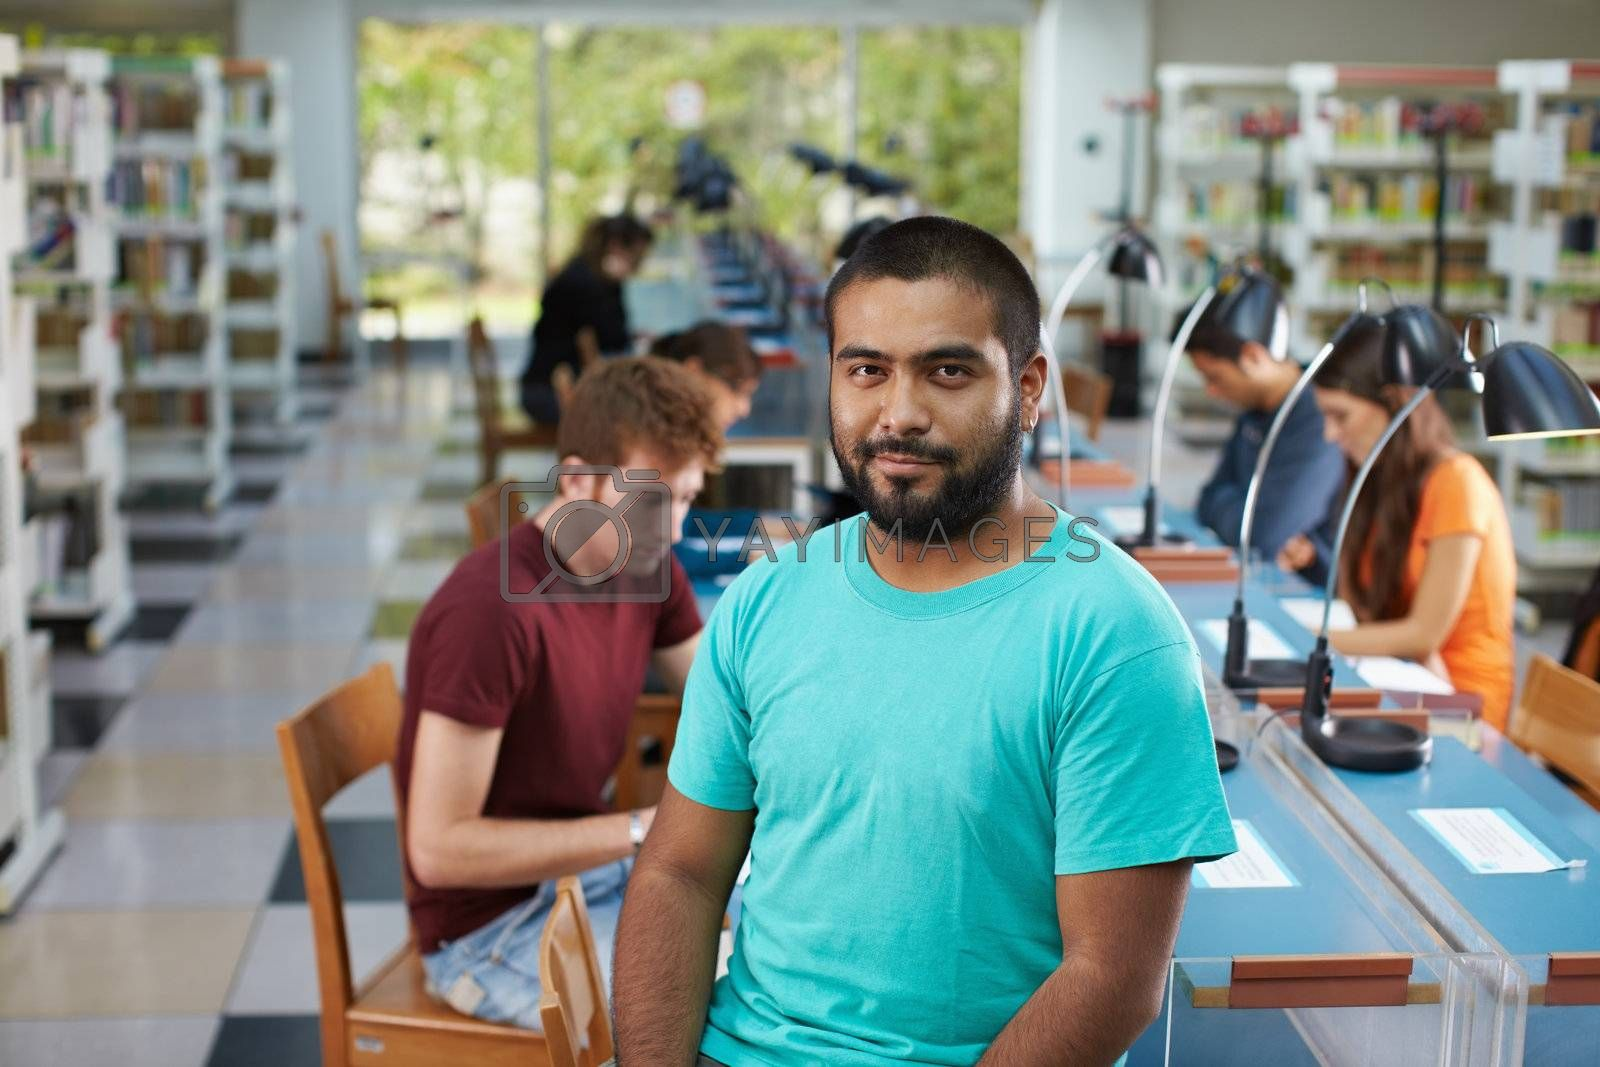 portrait of male college student sitting on table in library and looking at camera. Horizontal shape, waist up